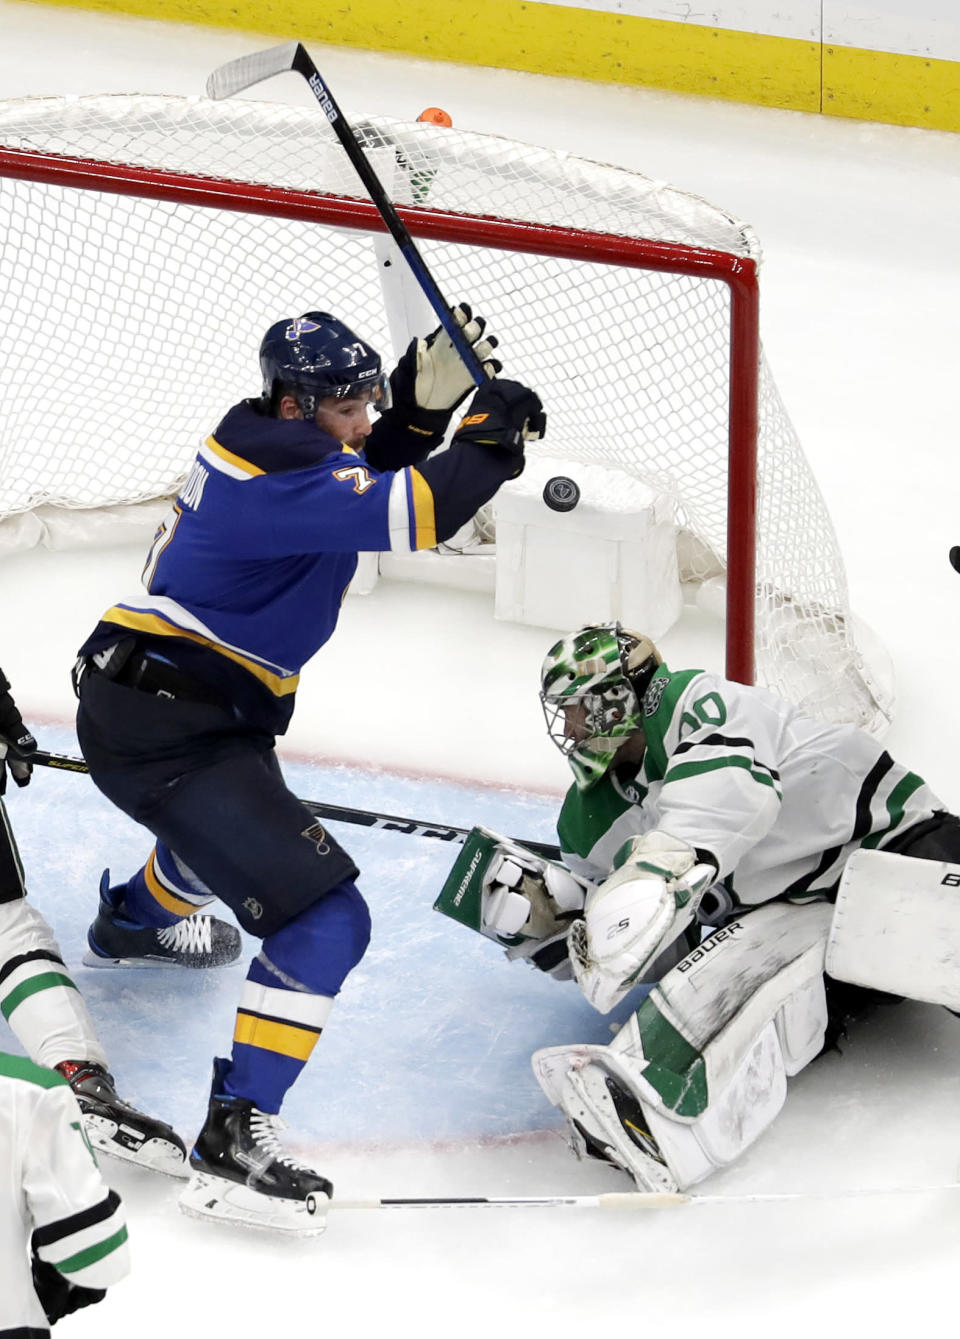 St. Louis Blues' Pat Maroon, left, celebrates after scoring against Dallas Stars goaltender Ben Bishop during the second overtime in Game 7 of an NHL second-round hockey playoff series Tuesday, May 7, 2019, in St. Louis. The Blues won 2-1 to take the series. (AP Photo/Jeff Roberson)